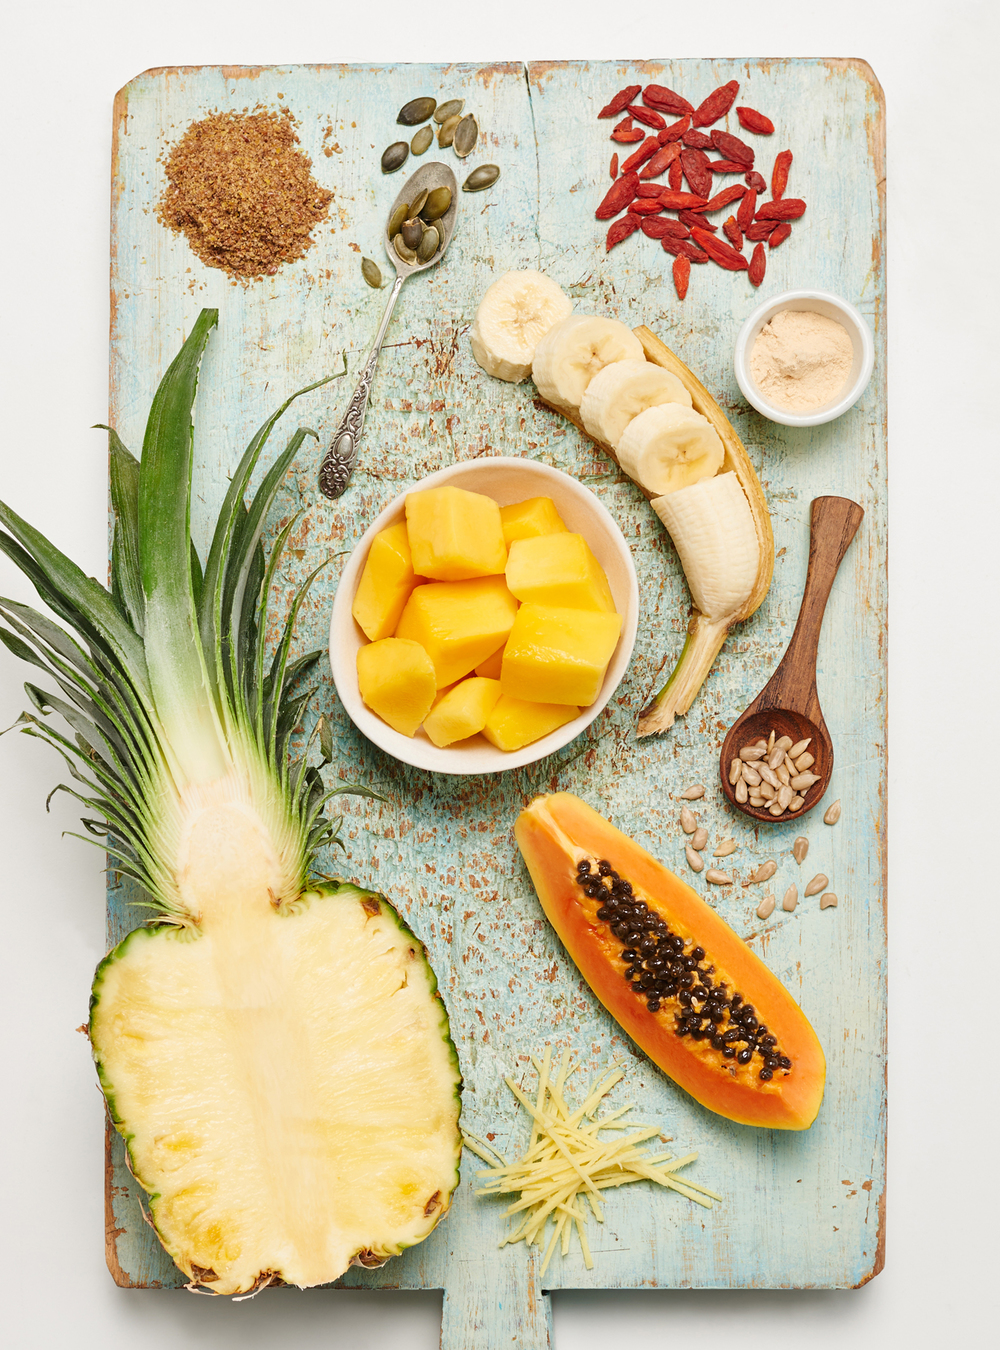 food photography of smoothie ingredients